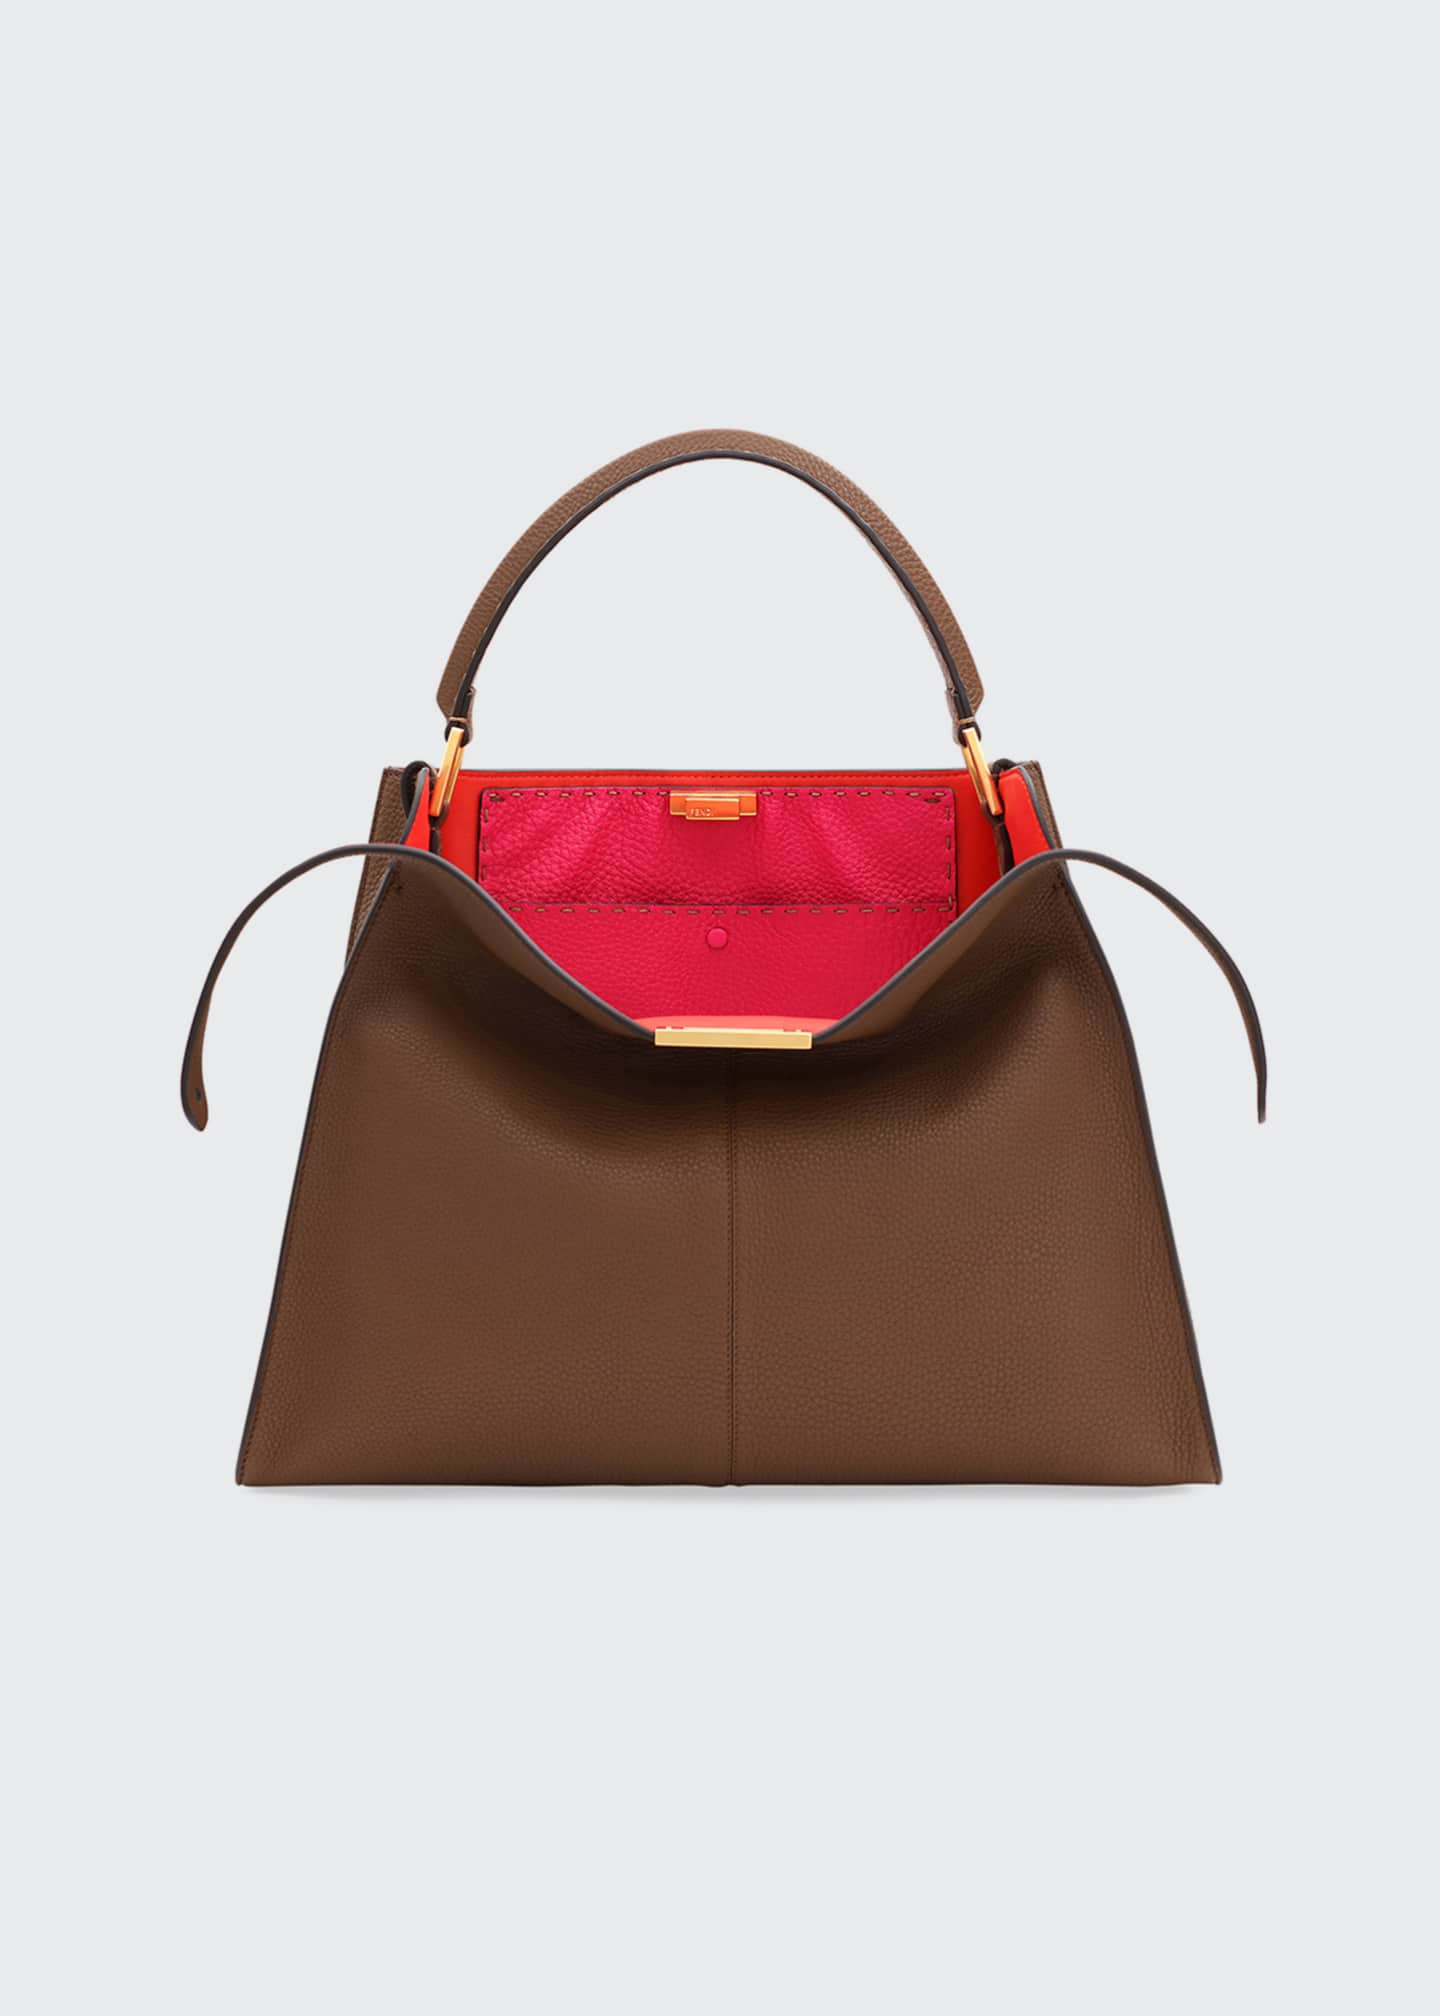 Fendi Peekaboo X-Lite Calf Satchel Bag